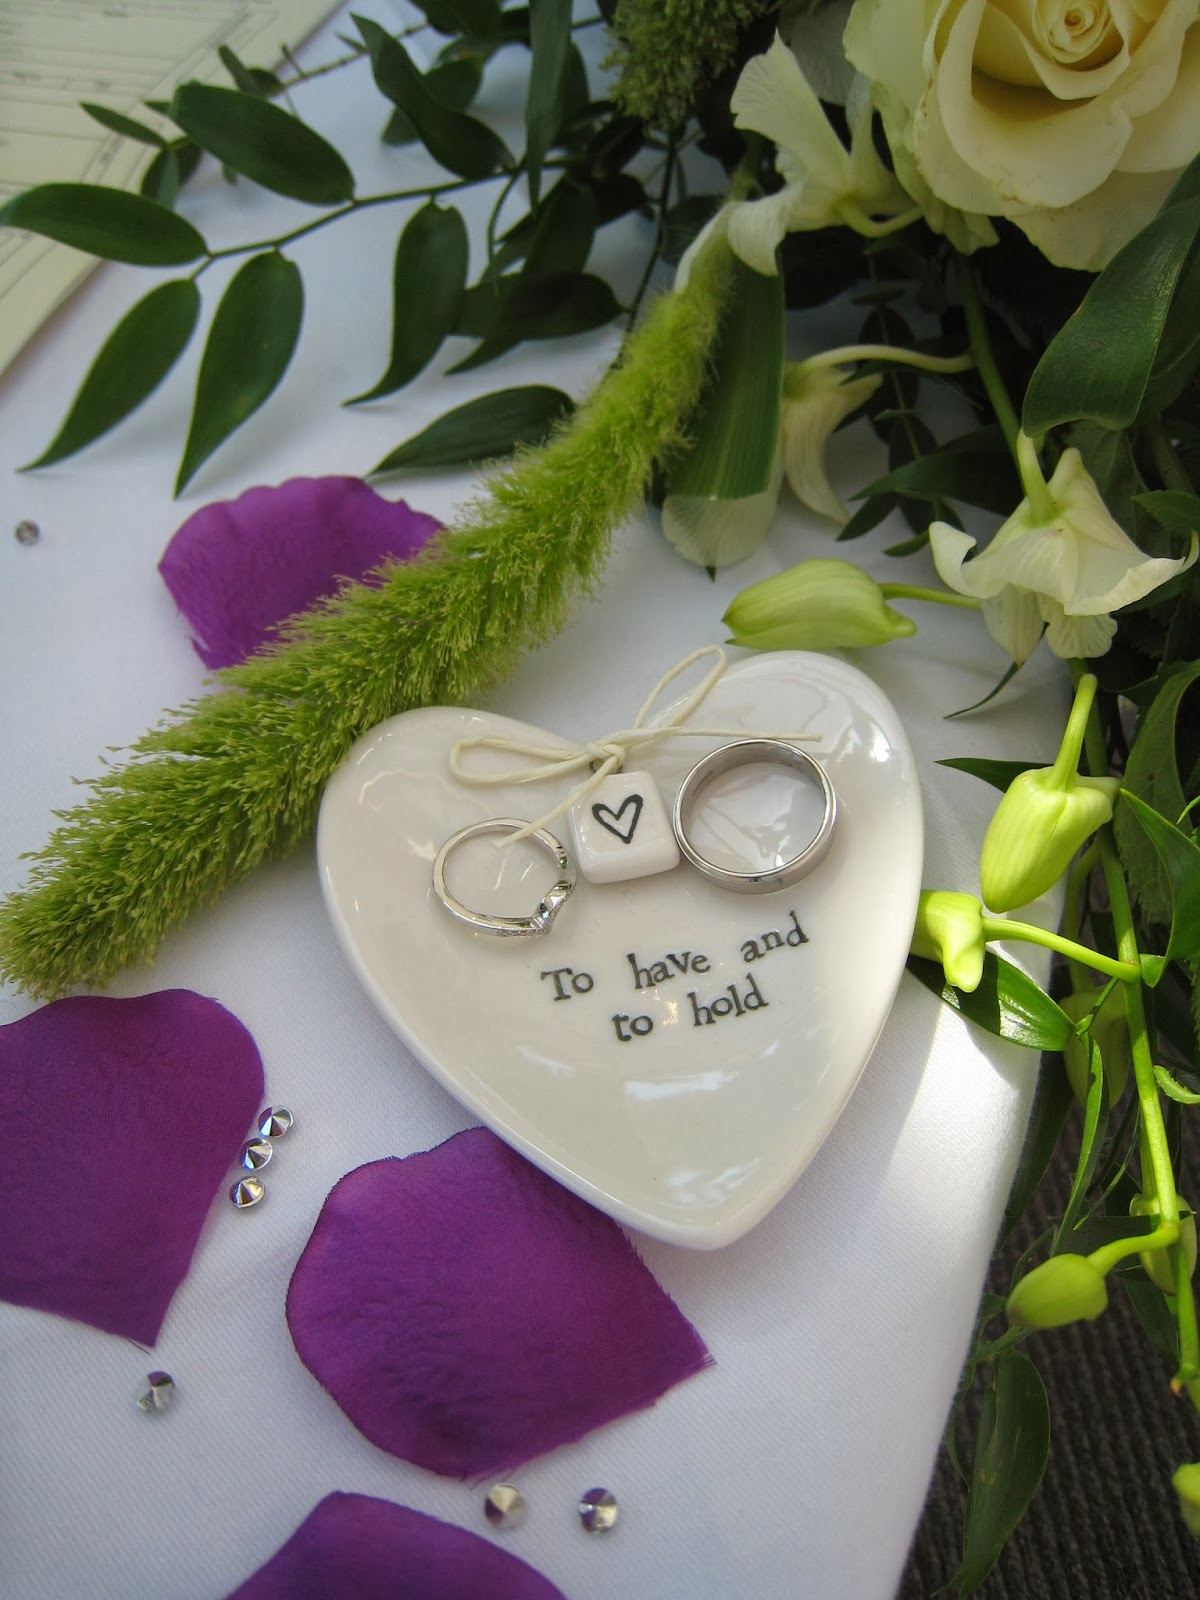 YOUR BIG DAY Do you have any advice about the exchange of rings